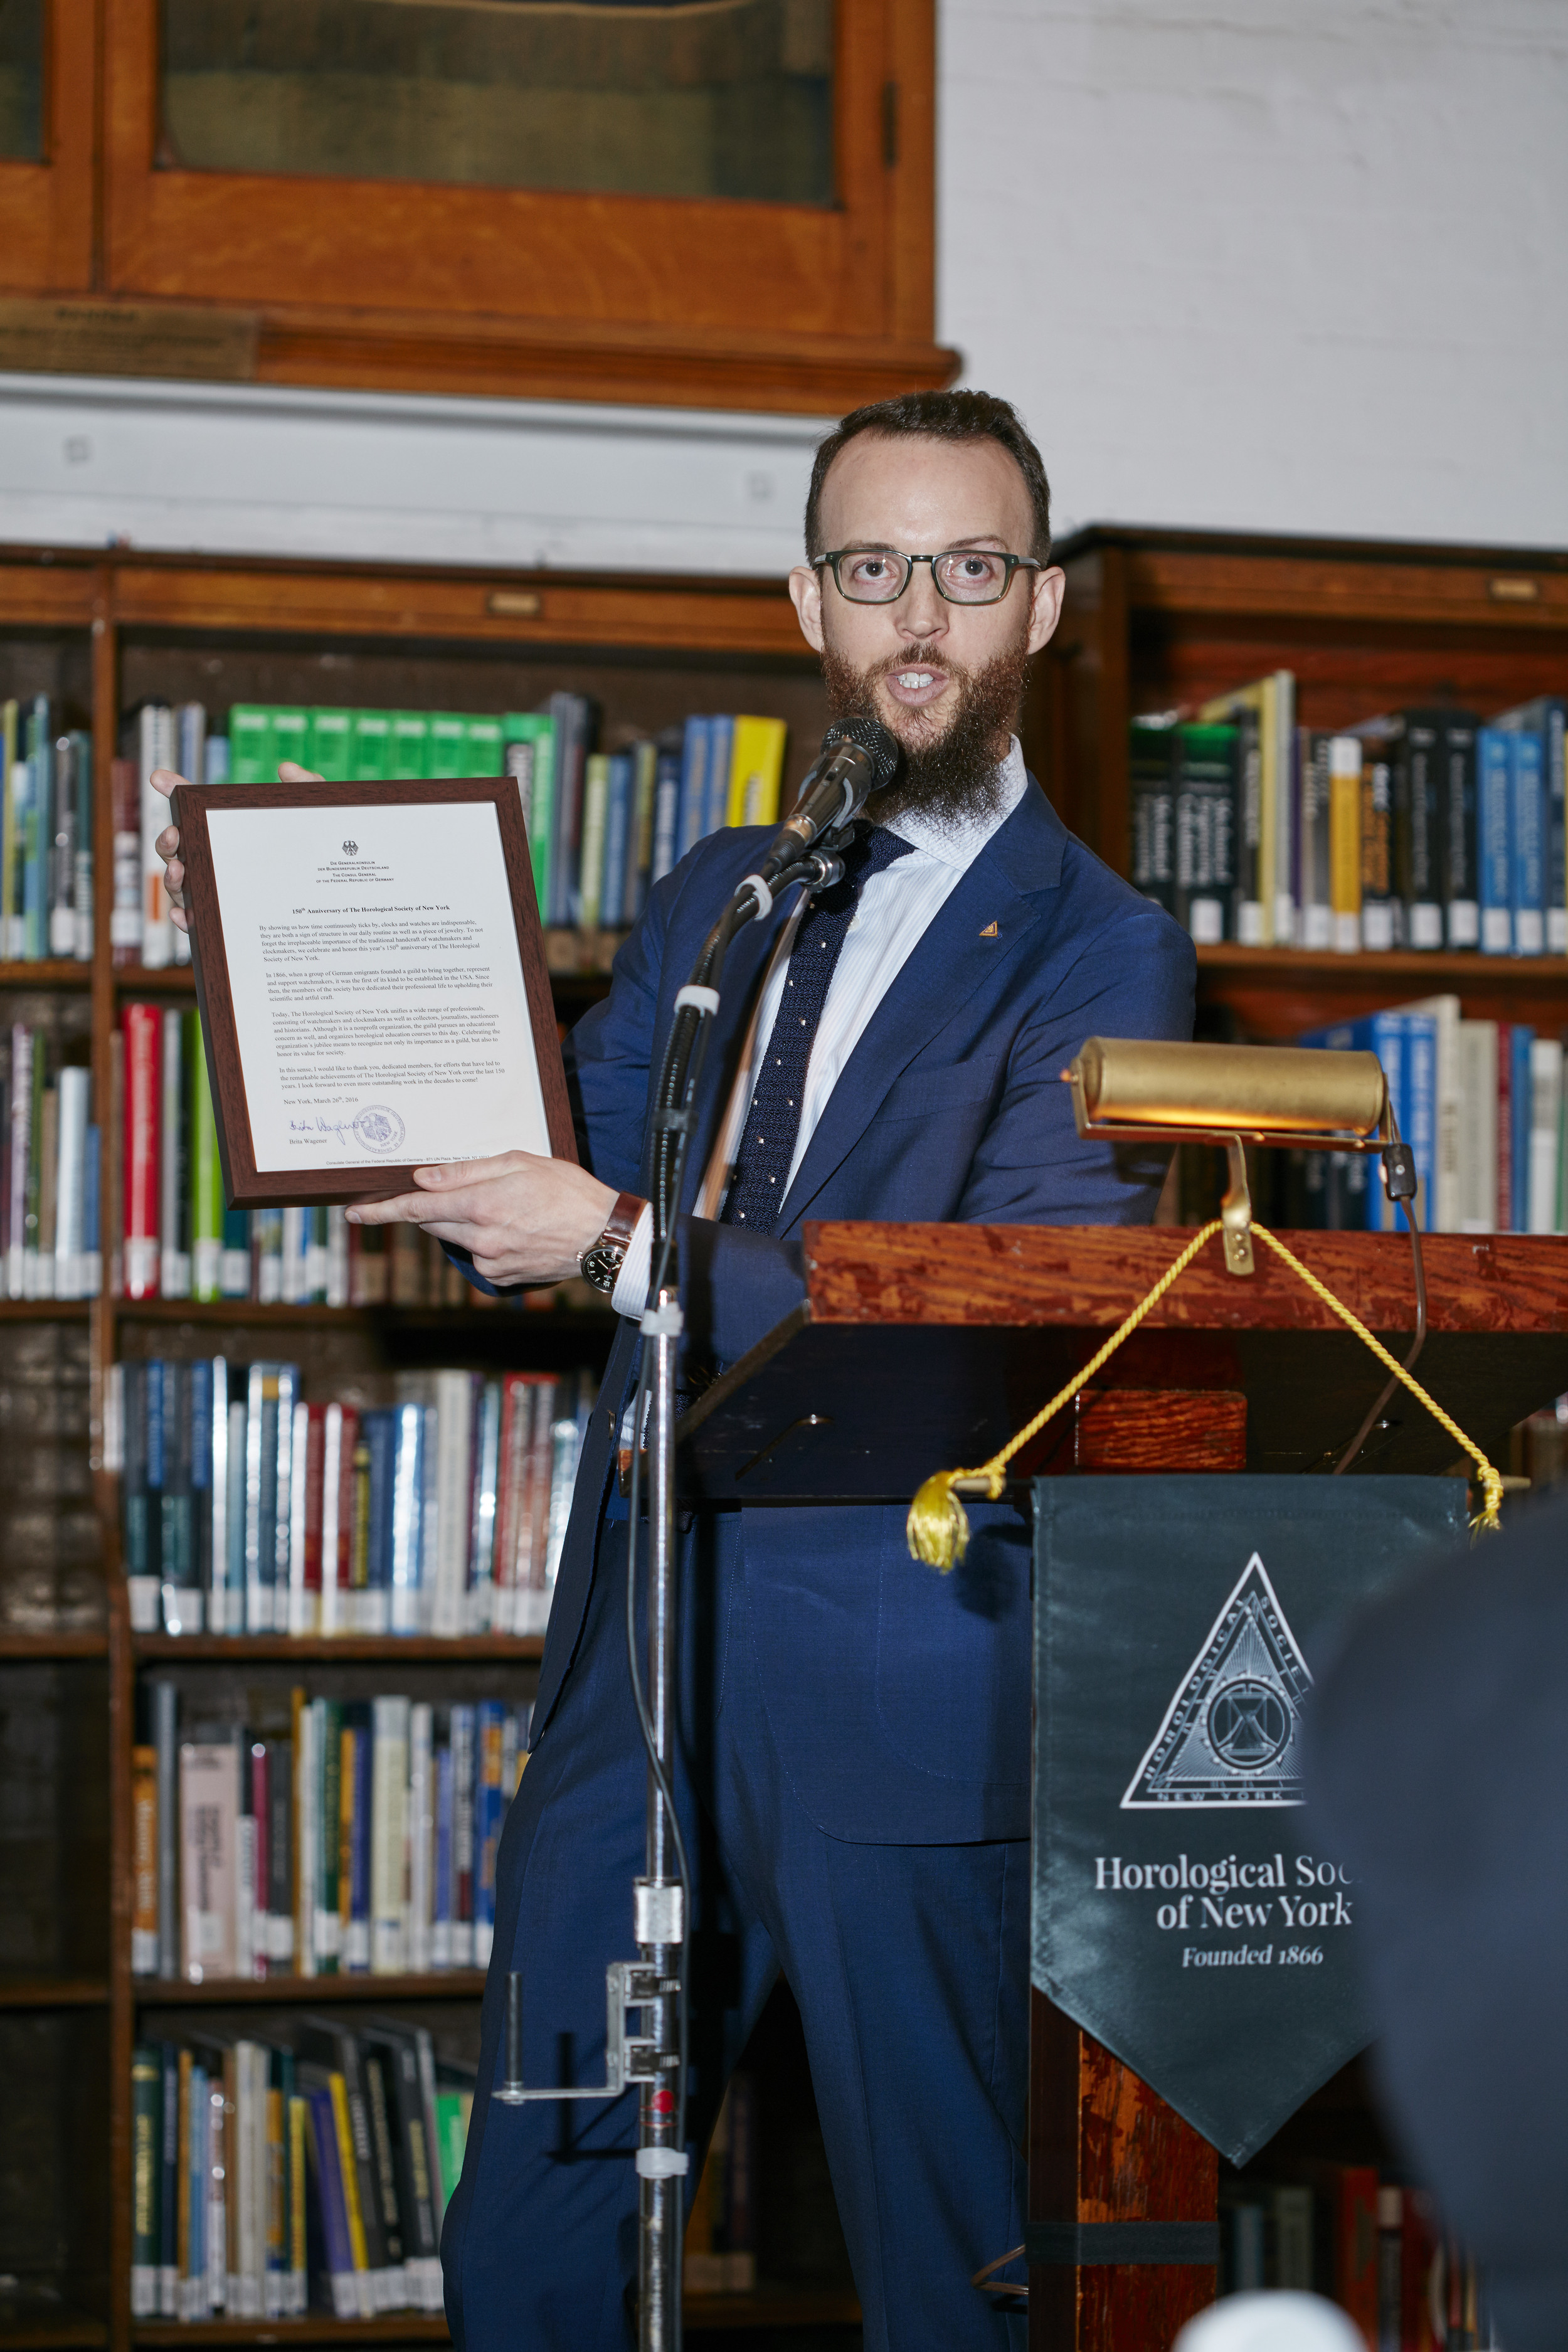 Nicholas Manousos, Vice President of HSNY,presenting a proclamation from the German government